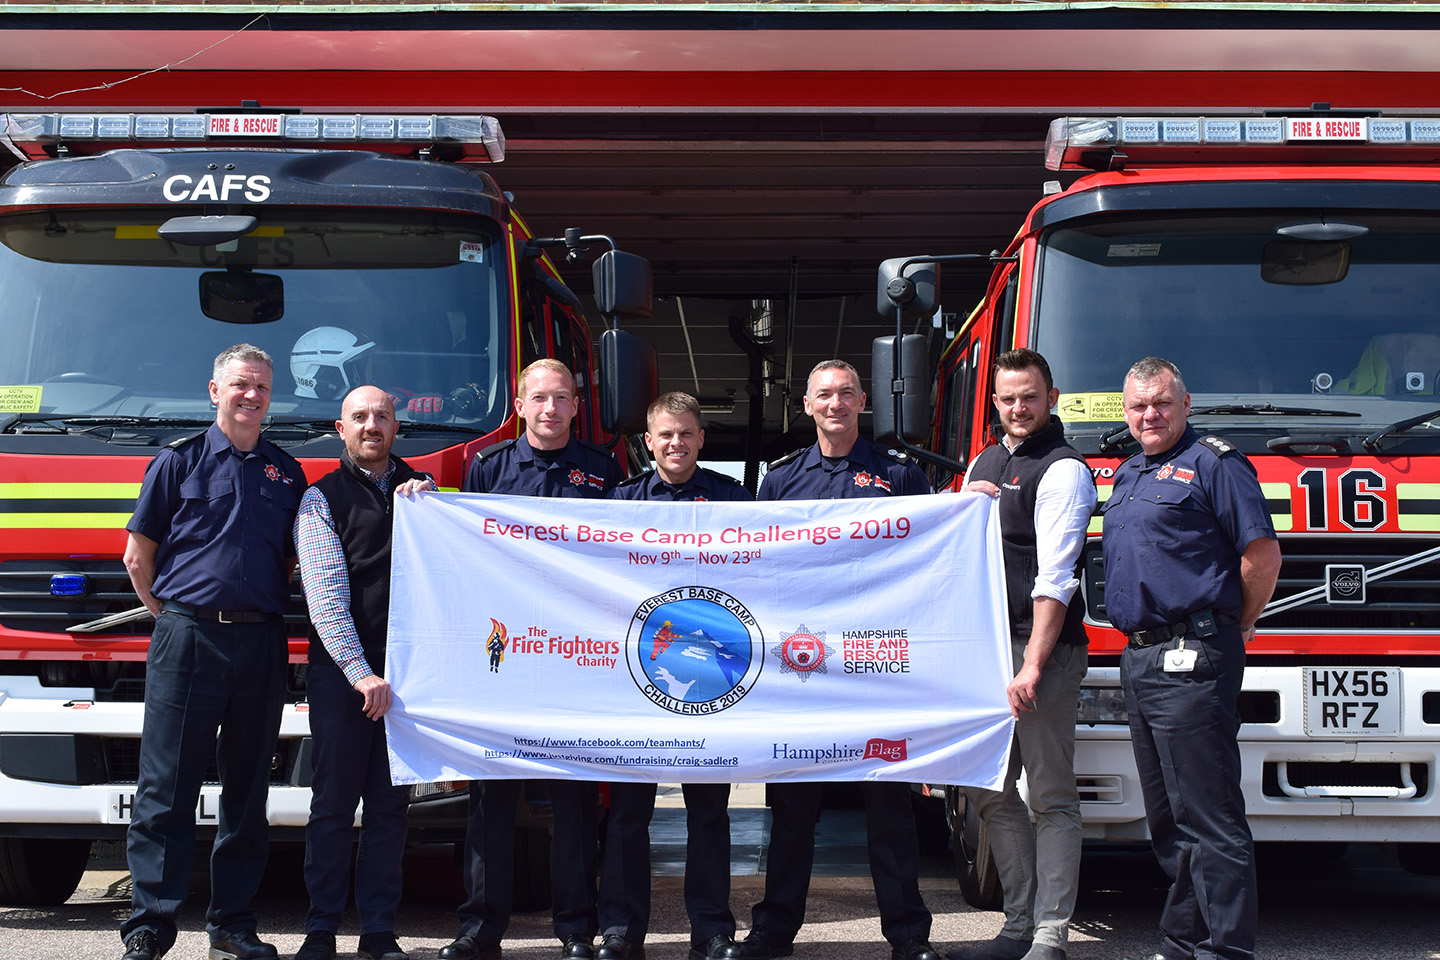 Coopers Fire at Havant fire station to Sponsor Hampshire Fire and Rescue